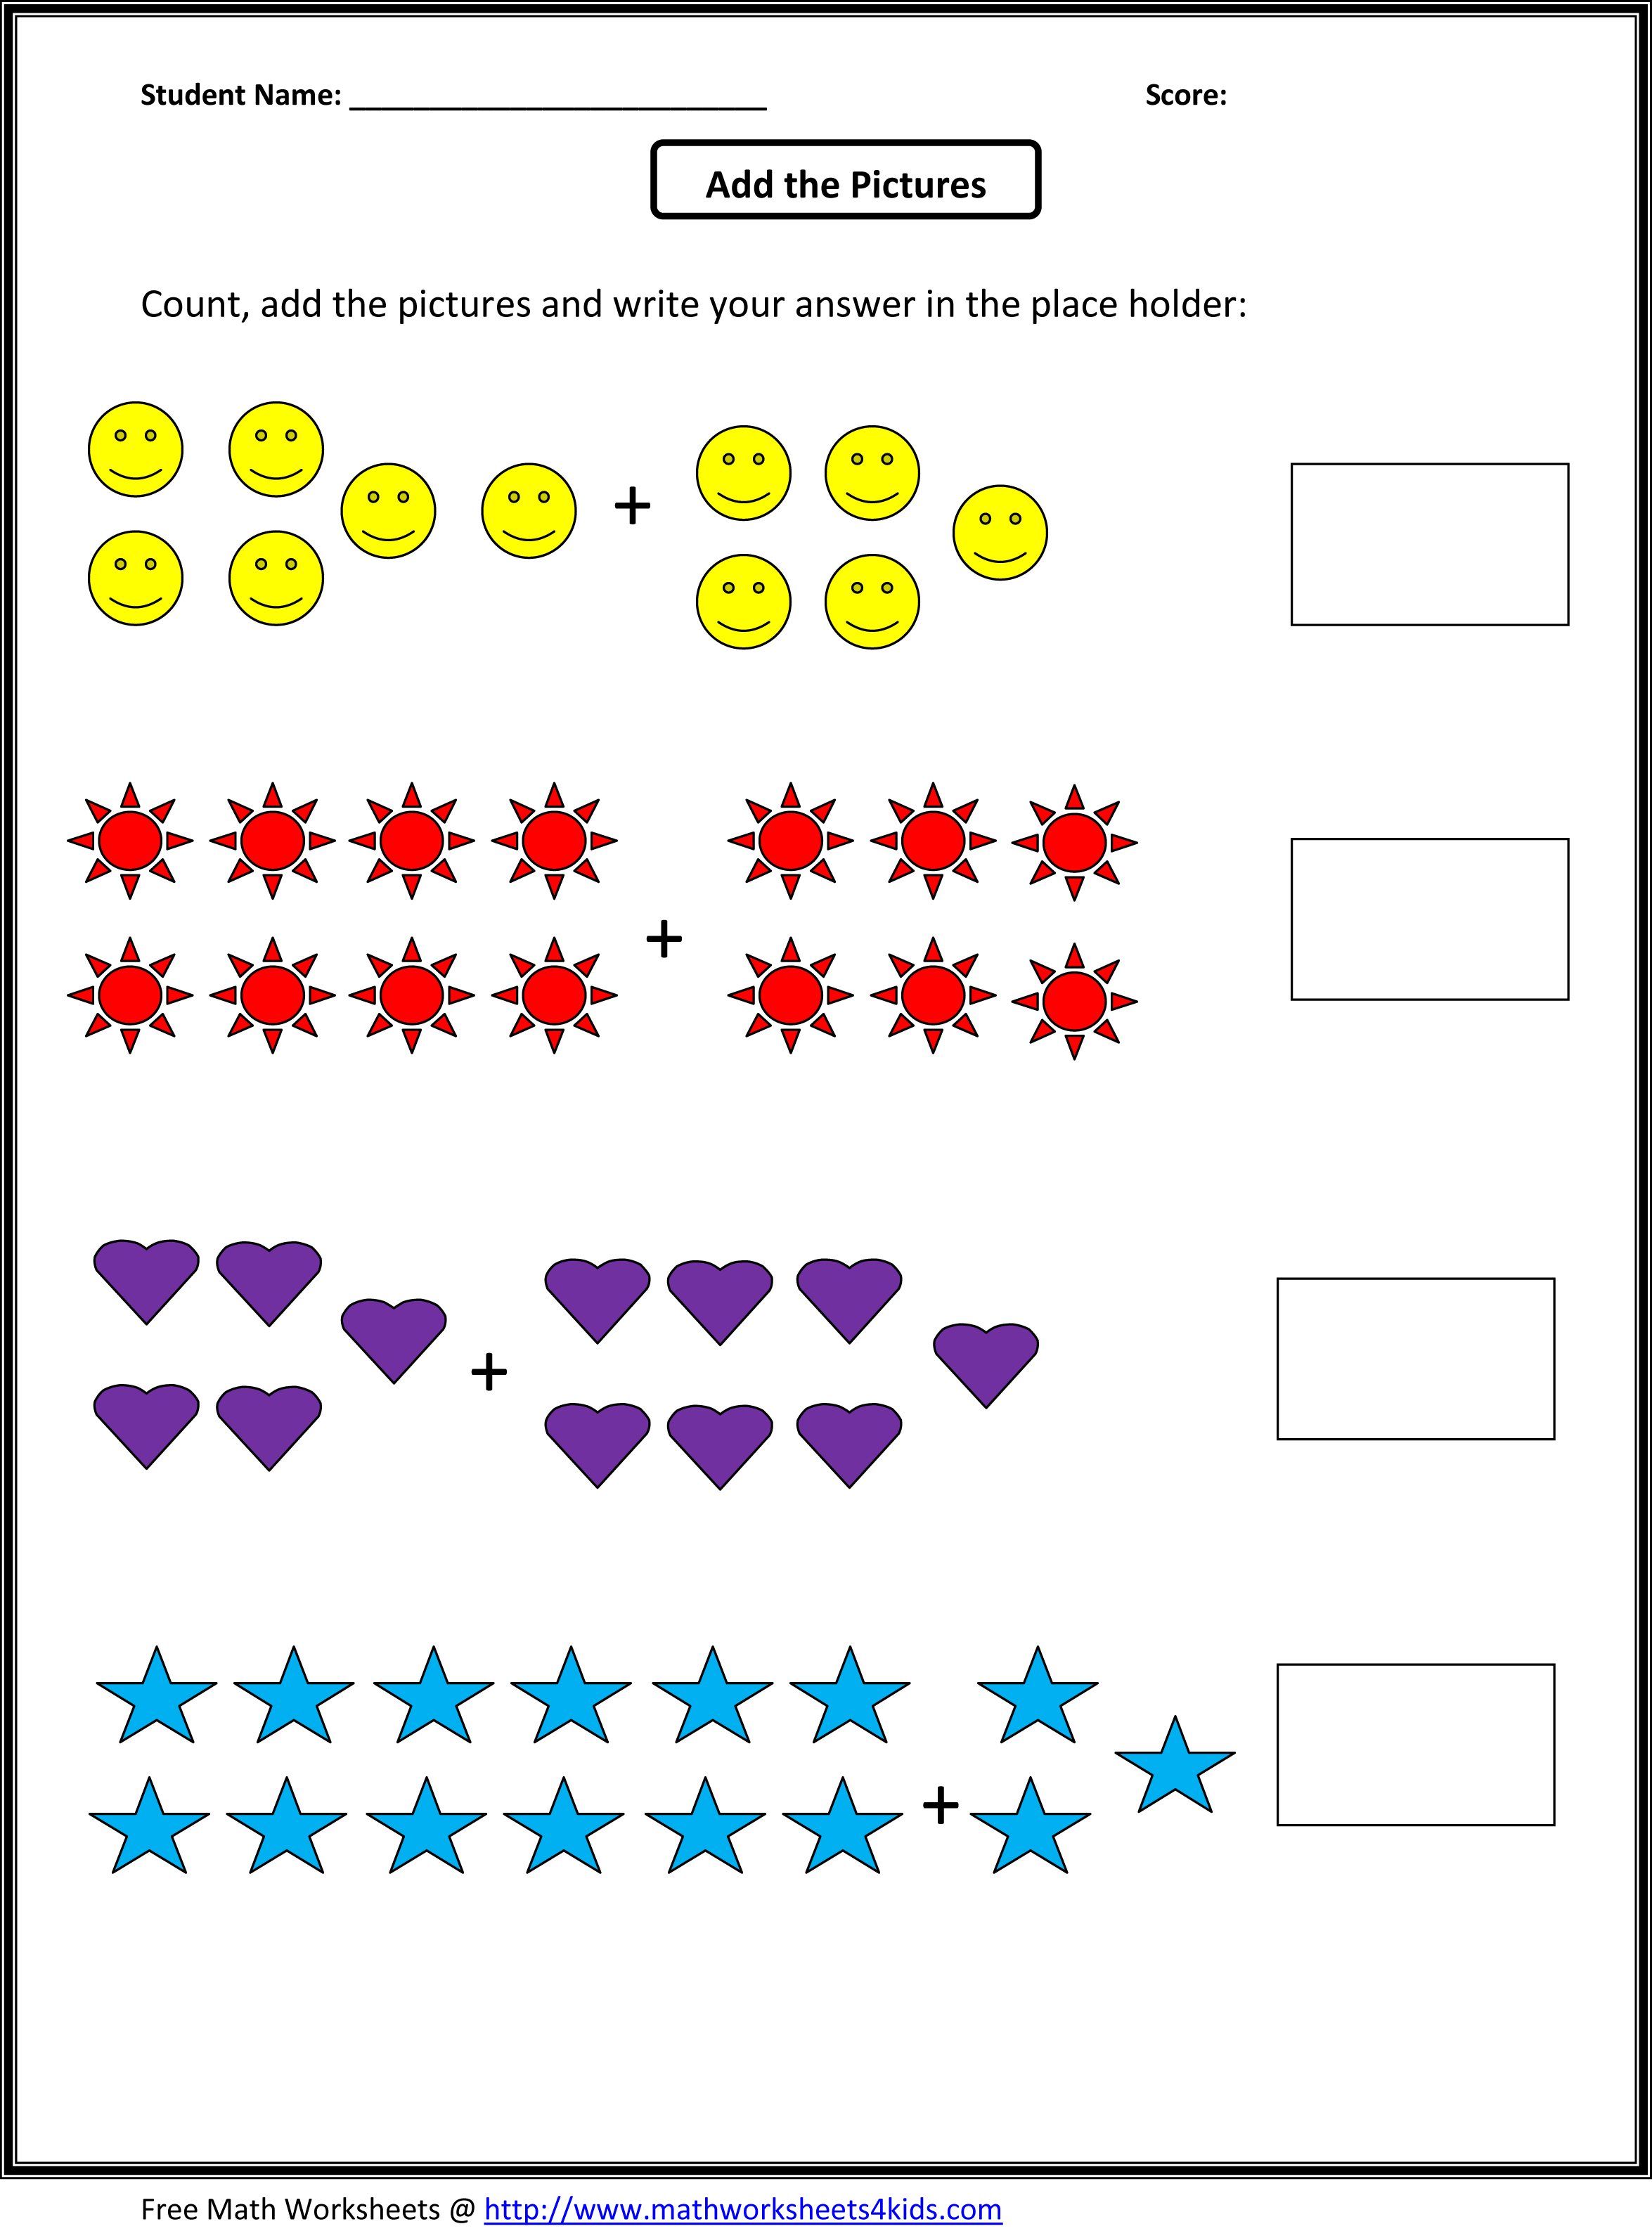 Proatmealus  Personable Grade  Maths Worksheet  Reocurent With Lovable Math Worksheets For St Grade Free  Reocurent With Extraordinary Adjectives And Adverbs Worksheets Th Grade Also Math  Digit Addition Worksheets In Addition Shape Printable Worksheets And Worksheets Generator As Well As Cursive Abc Worksheet Additionally Prefixes Re And Un Worksheets From Reocurentcom With Proatmealus  Lovable Grade  Maths Worksheet  Reocurent With Extraordinary Math Worksheets For St Grade Free  Reocurent And Personable Adjectives And Adverbs Worksheets Th Grade Also Math  Digit Addition Worksheets In Addition Shape Printable Worksheets From Reocurentcom